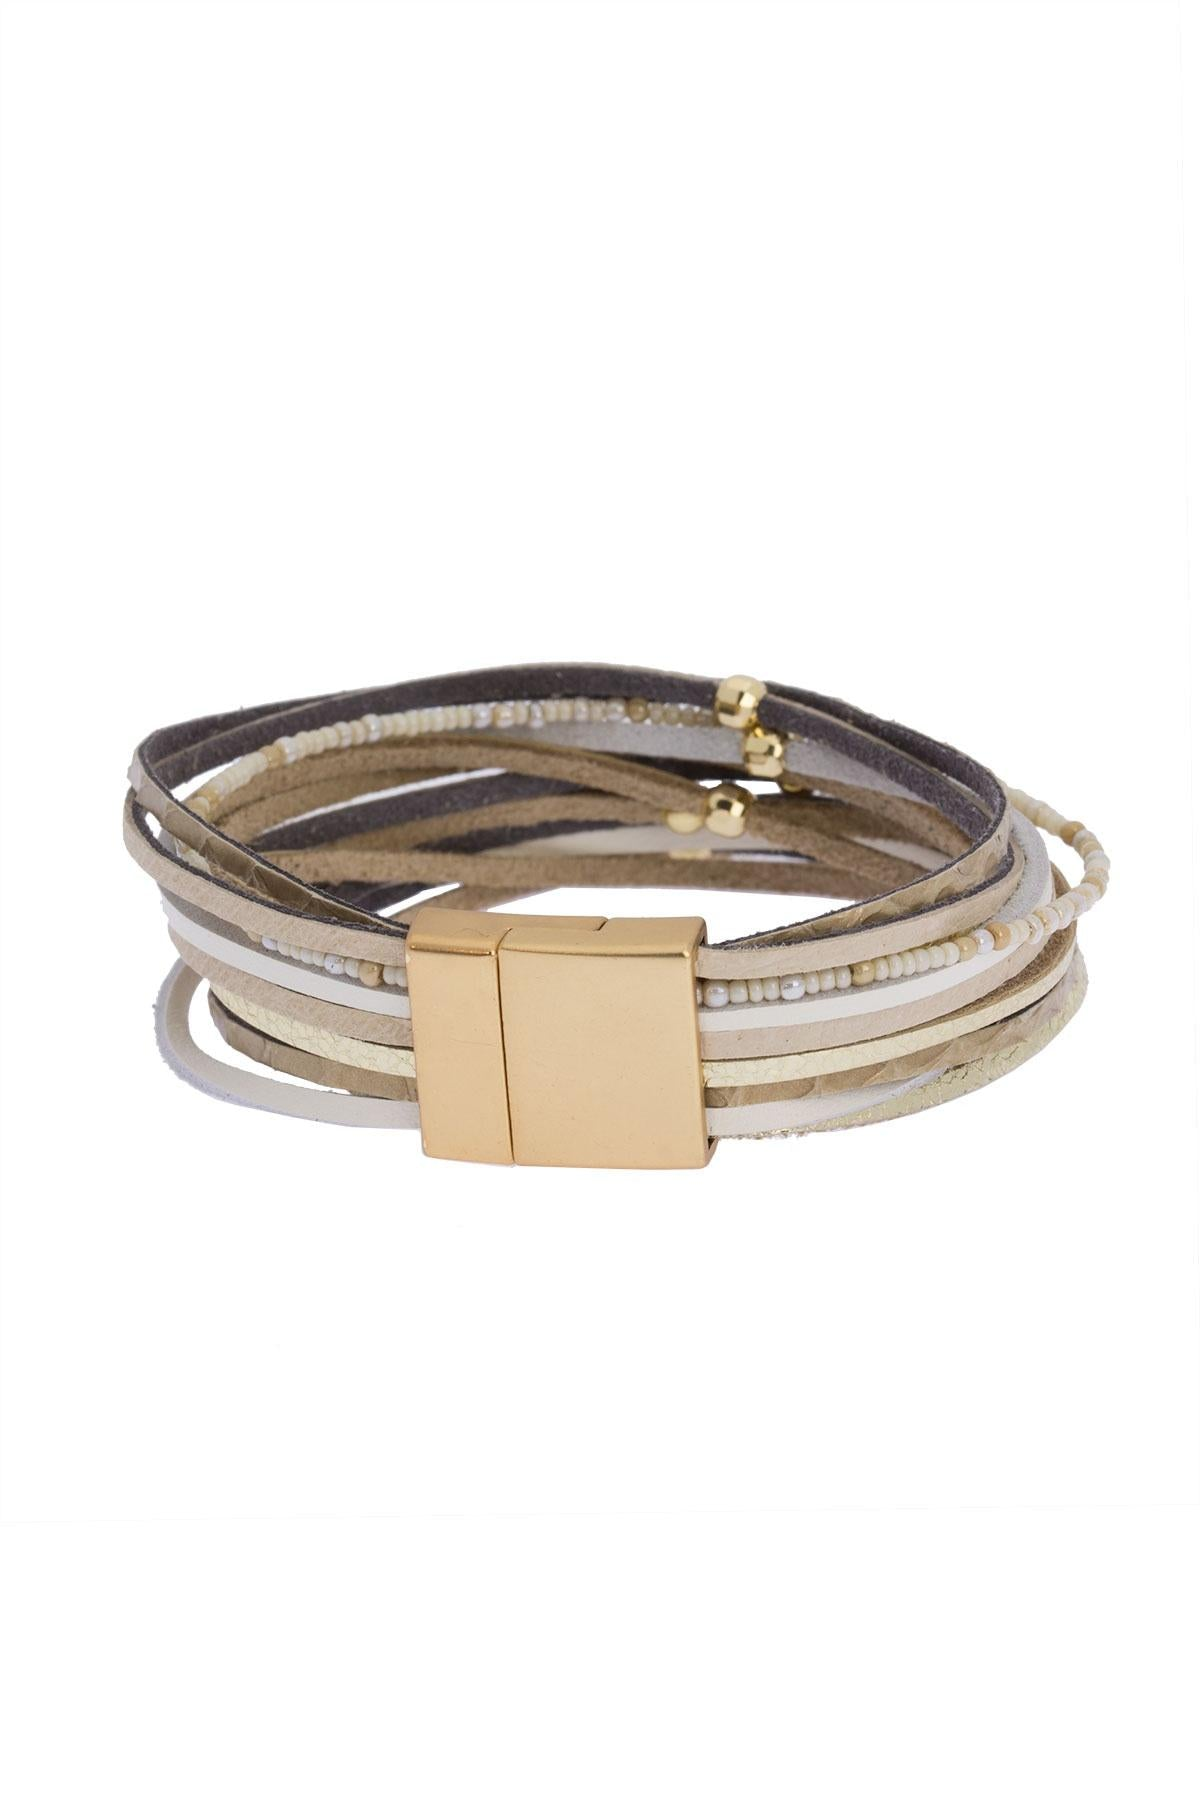 Ultra Lightweight Leather Bracelet